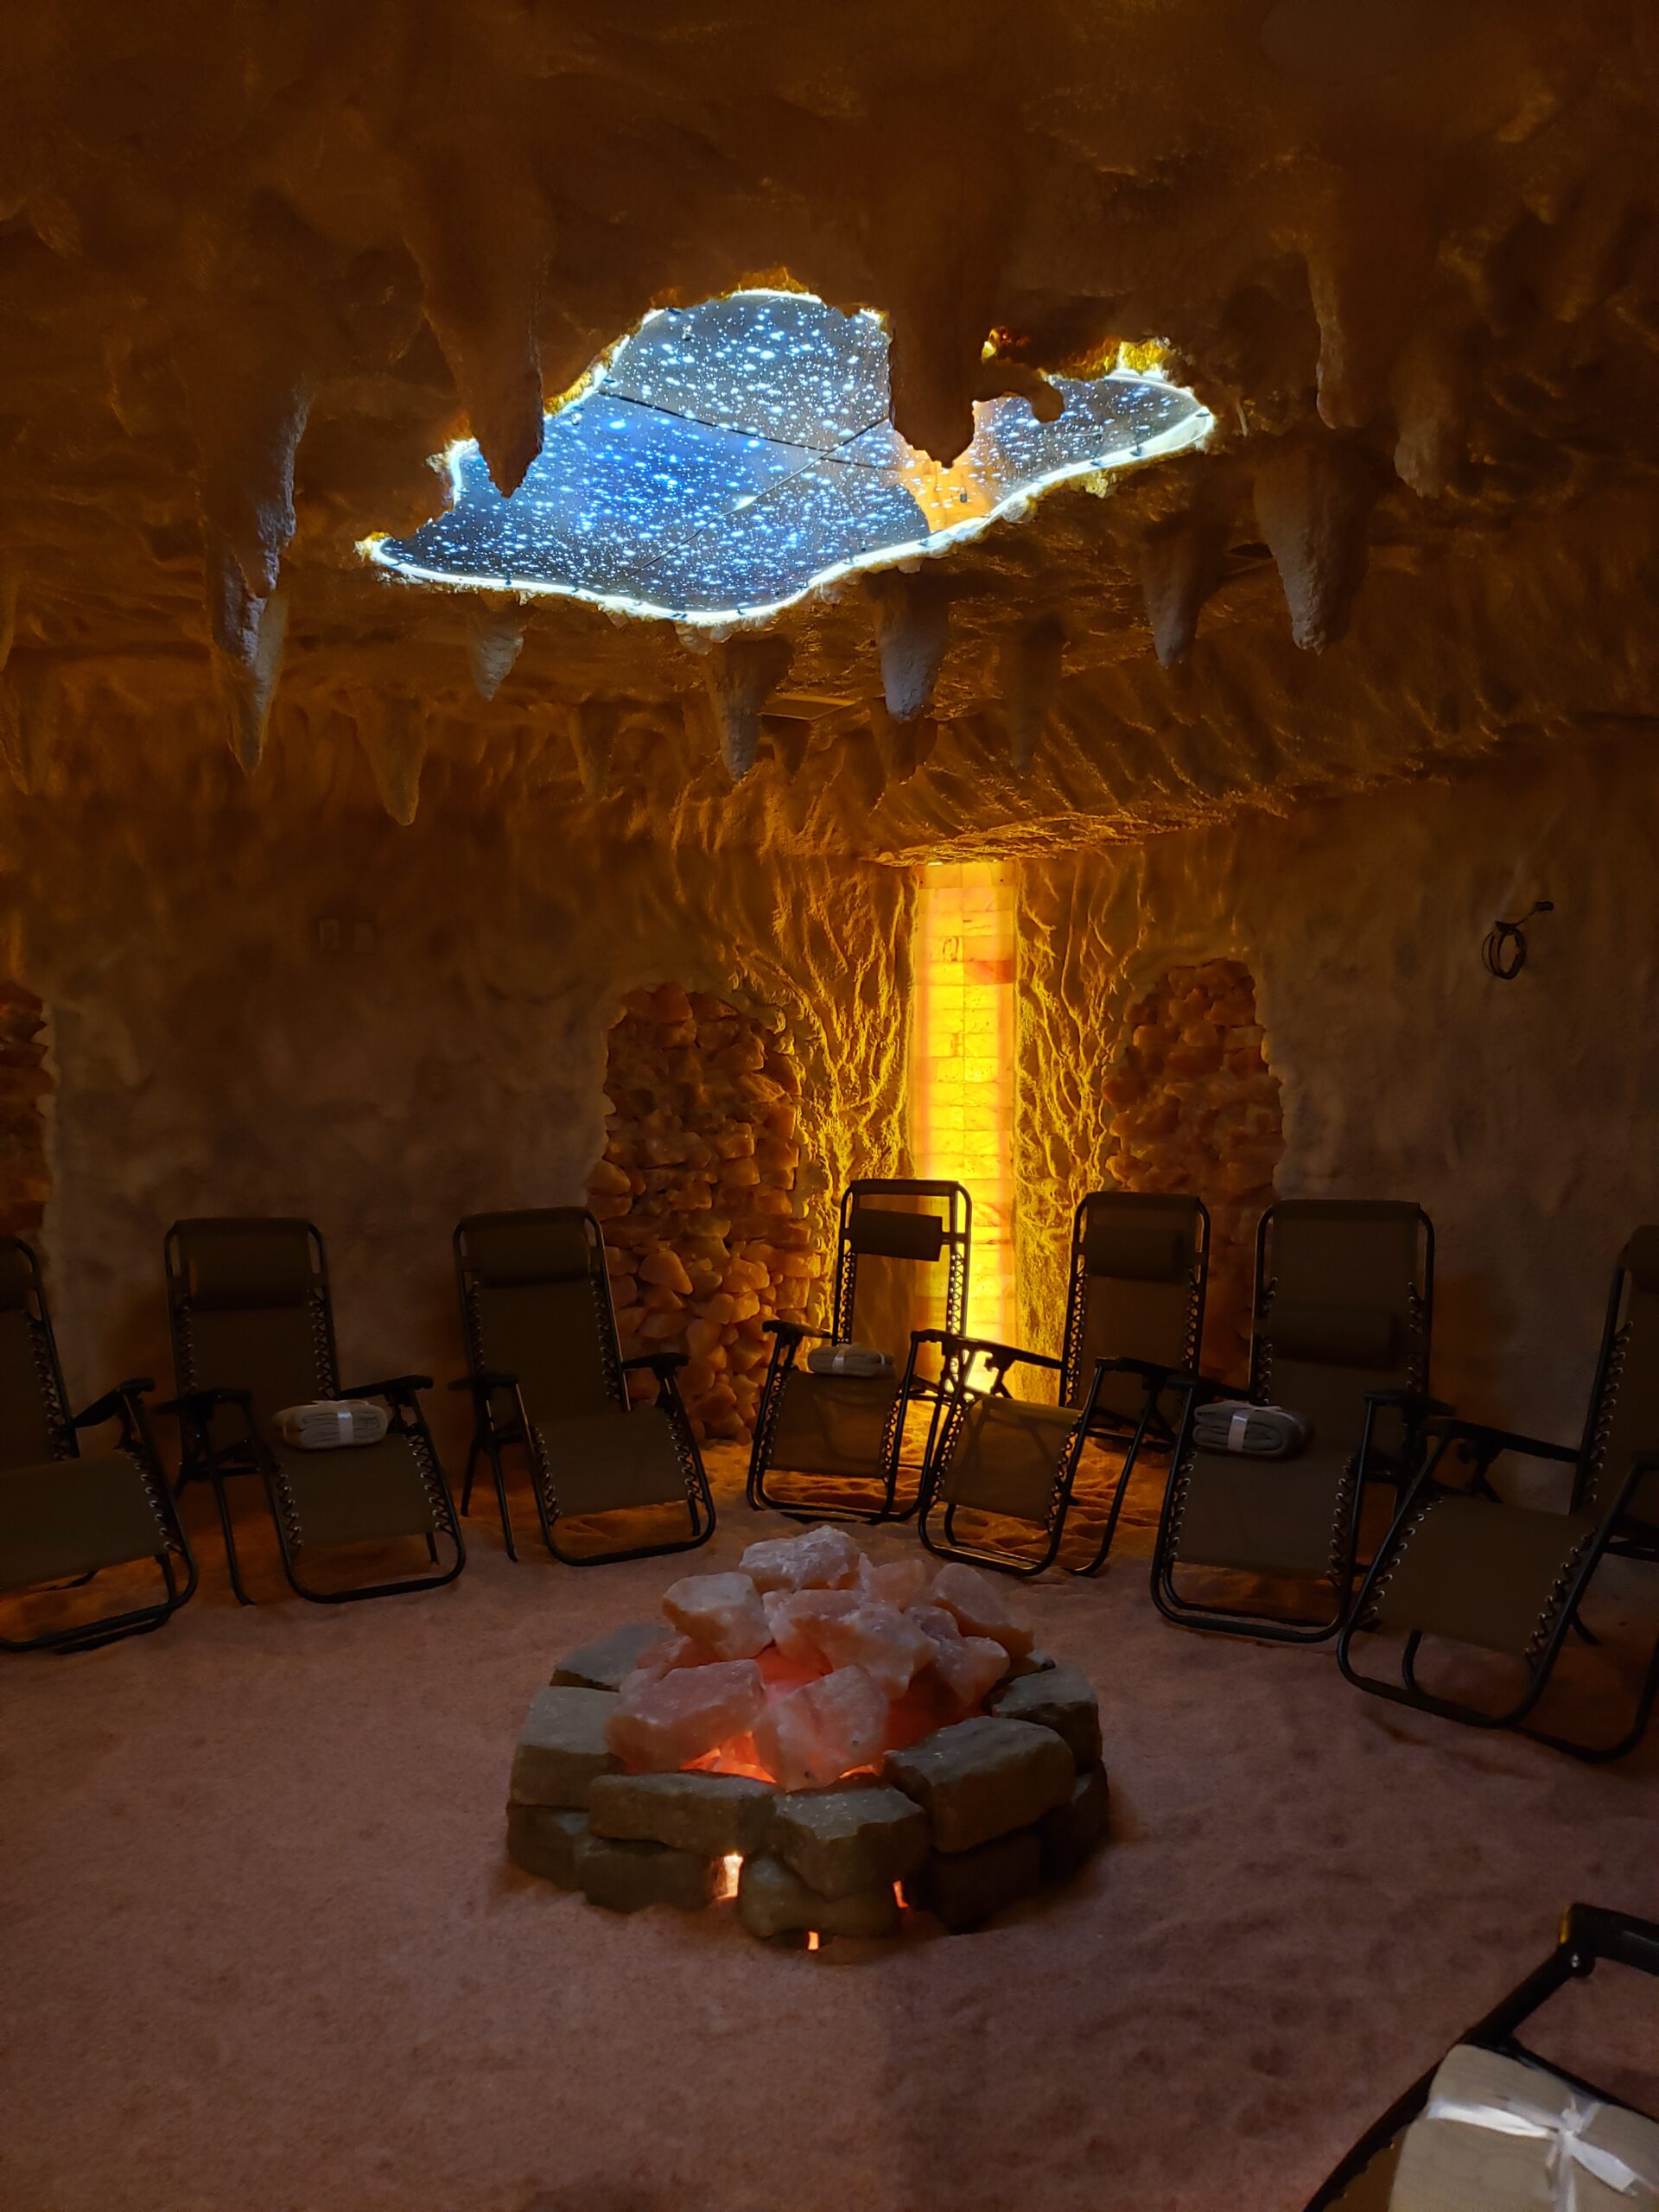 Amazing benefits of holistic healing: acupuncture, salt caves and more